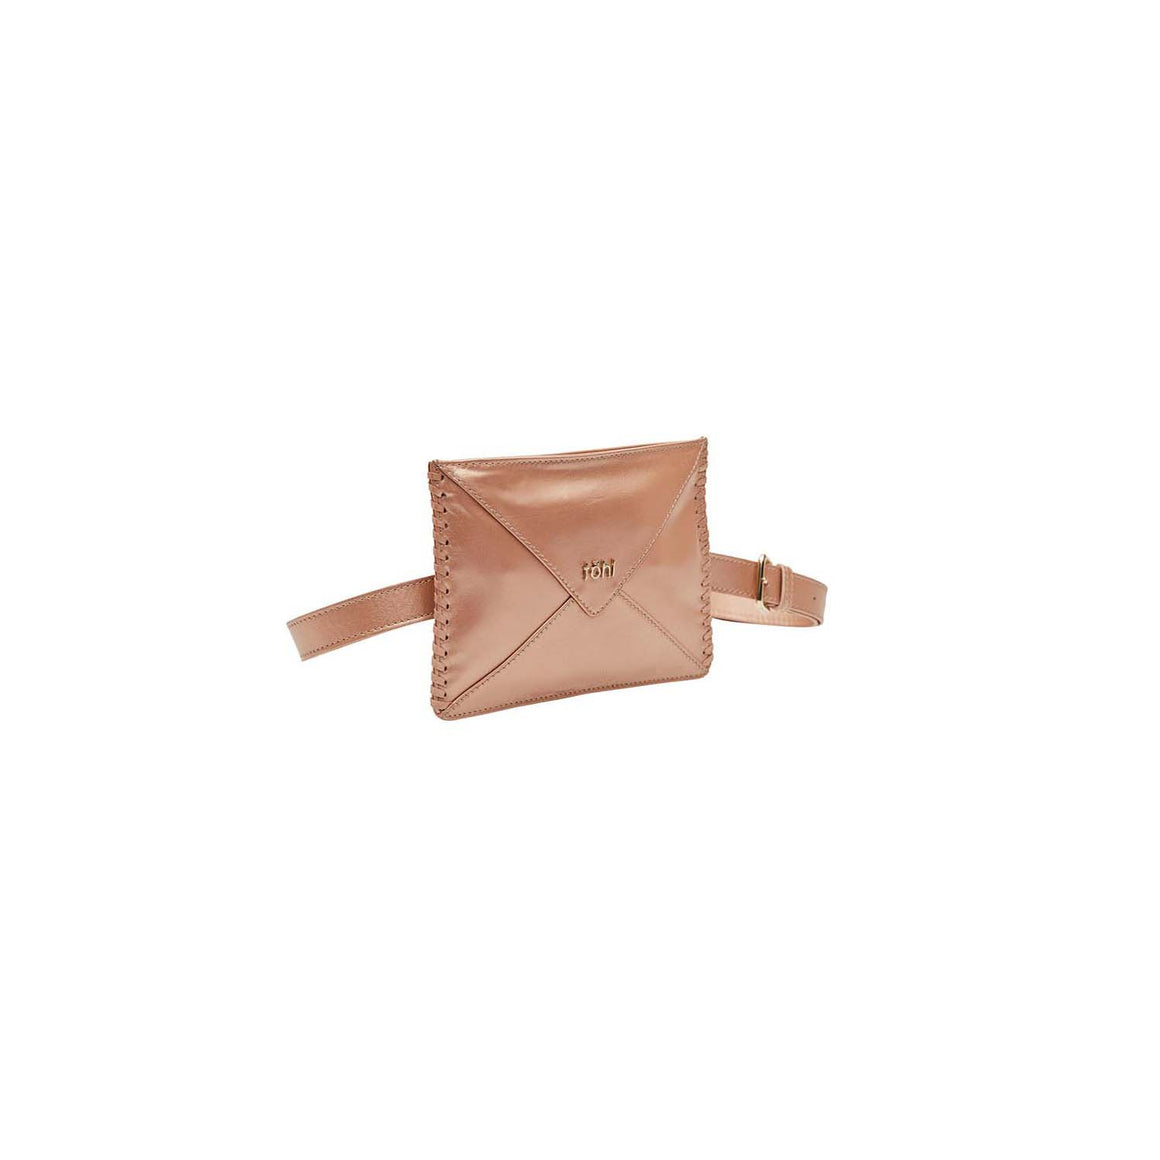 WP0002 - TOHL JUNIPER WOMEN'S WAIST POUCH - METALLIC ROSE GOLD